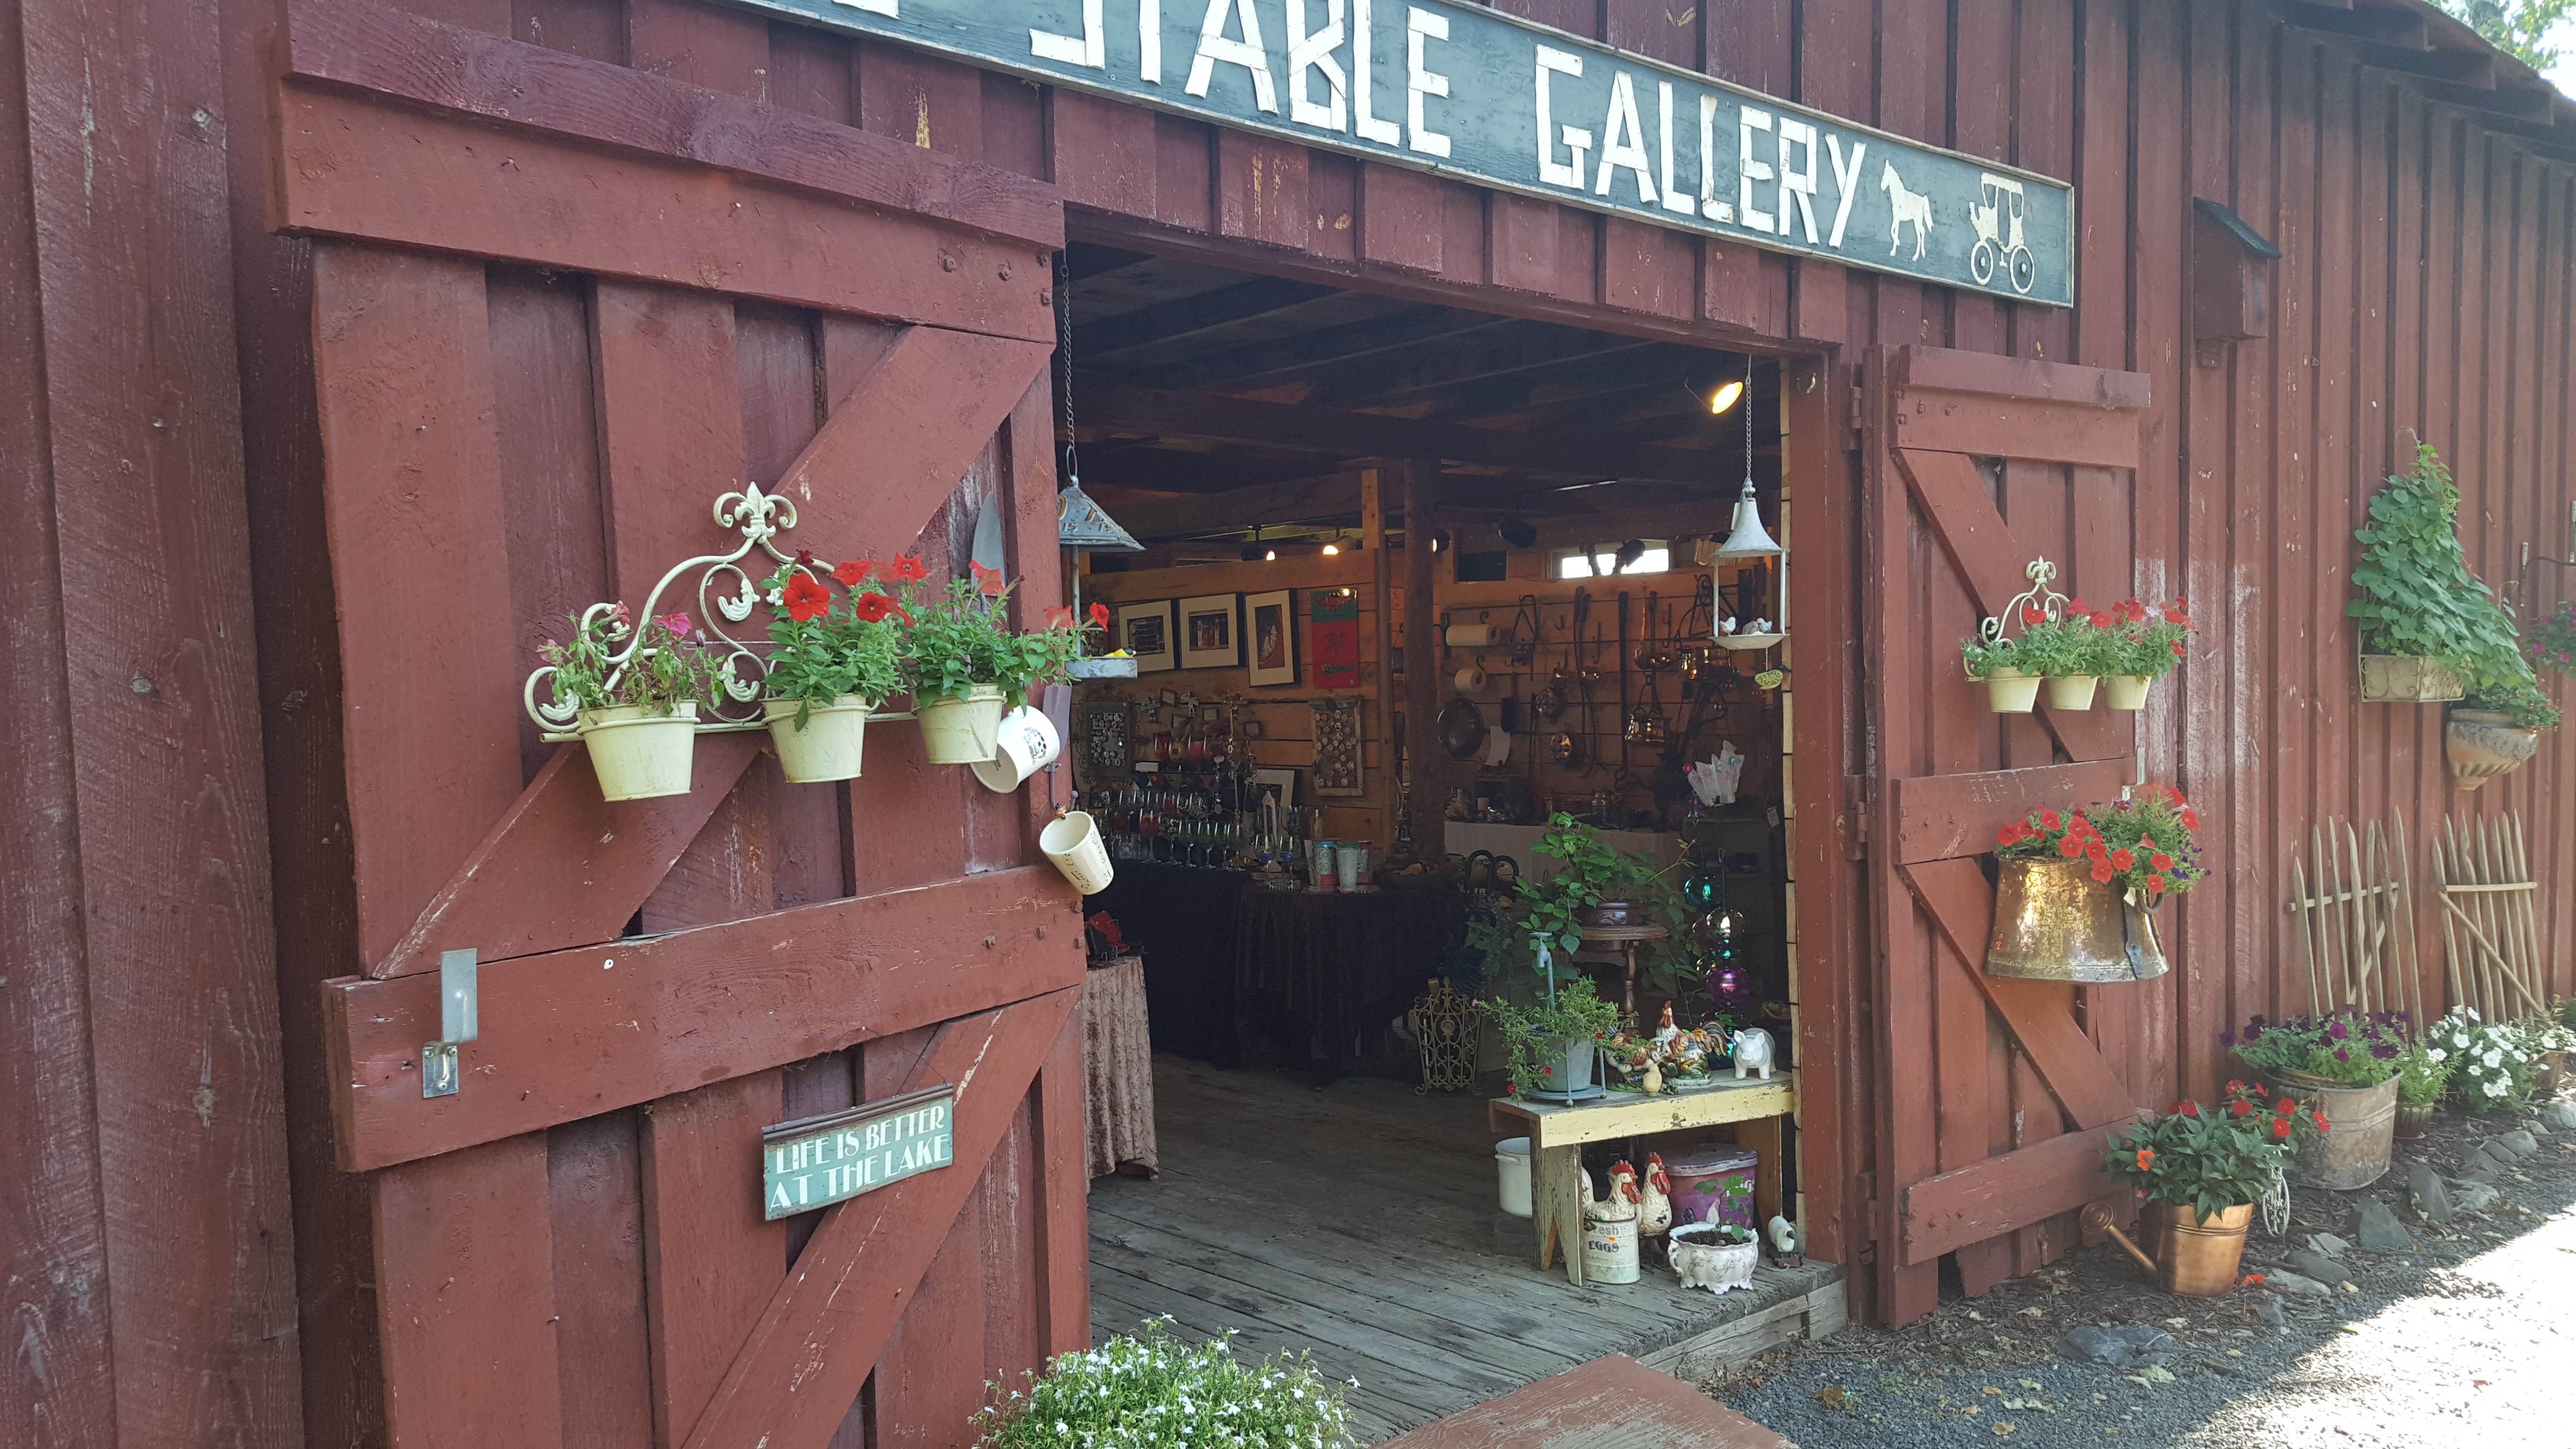 Stable Gallery